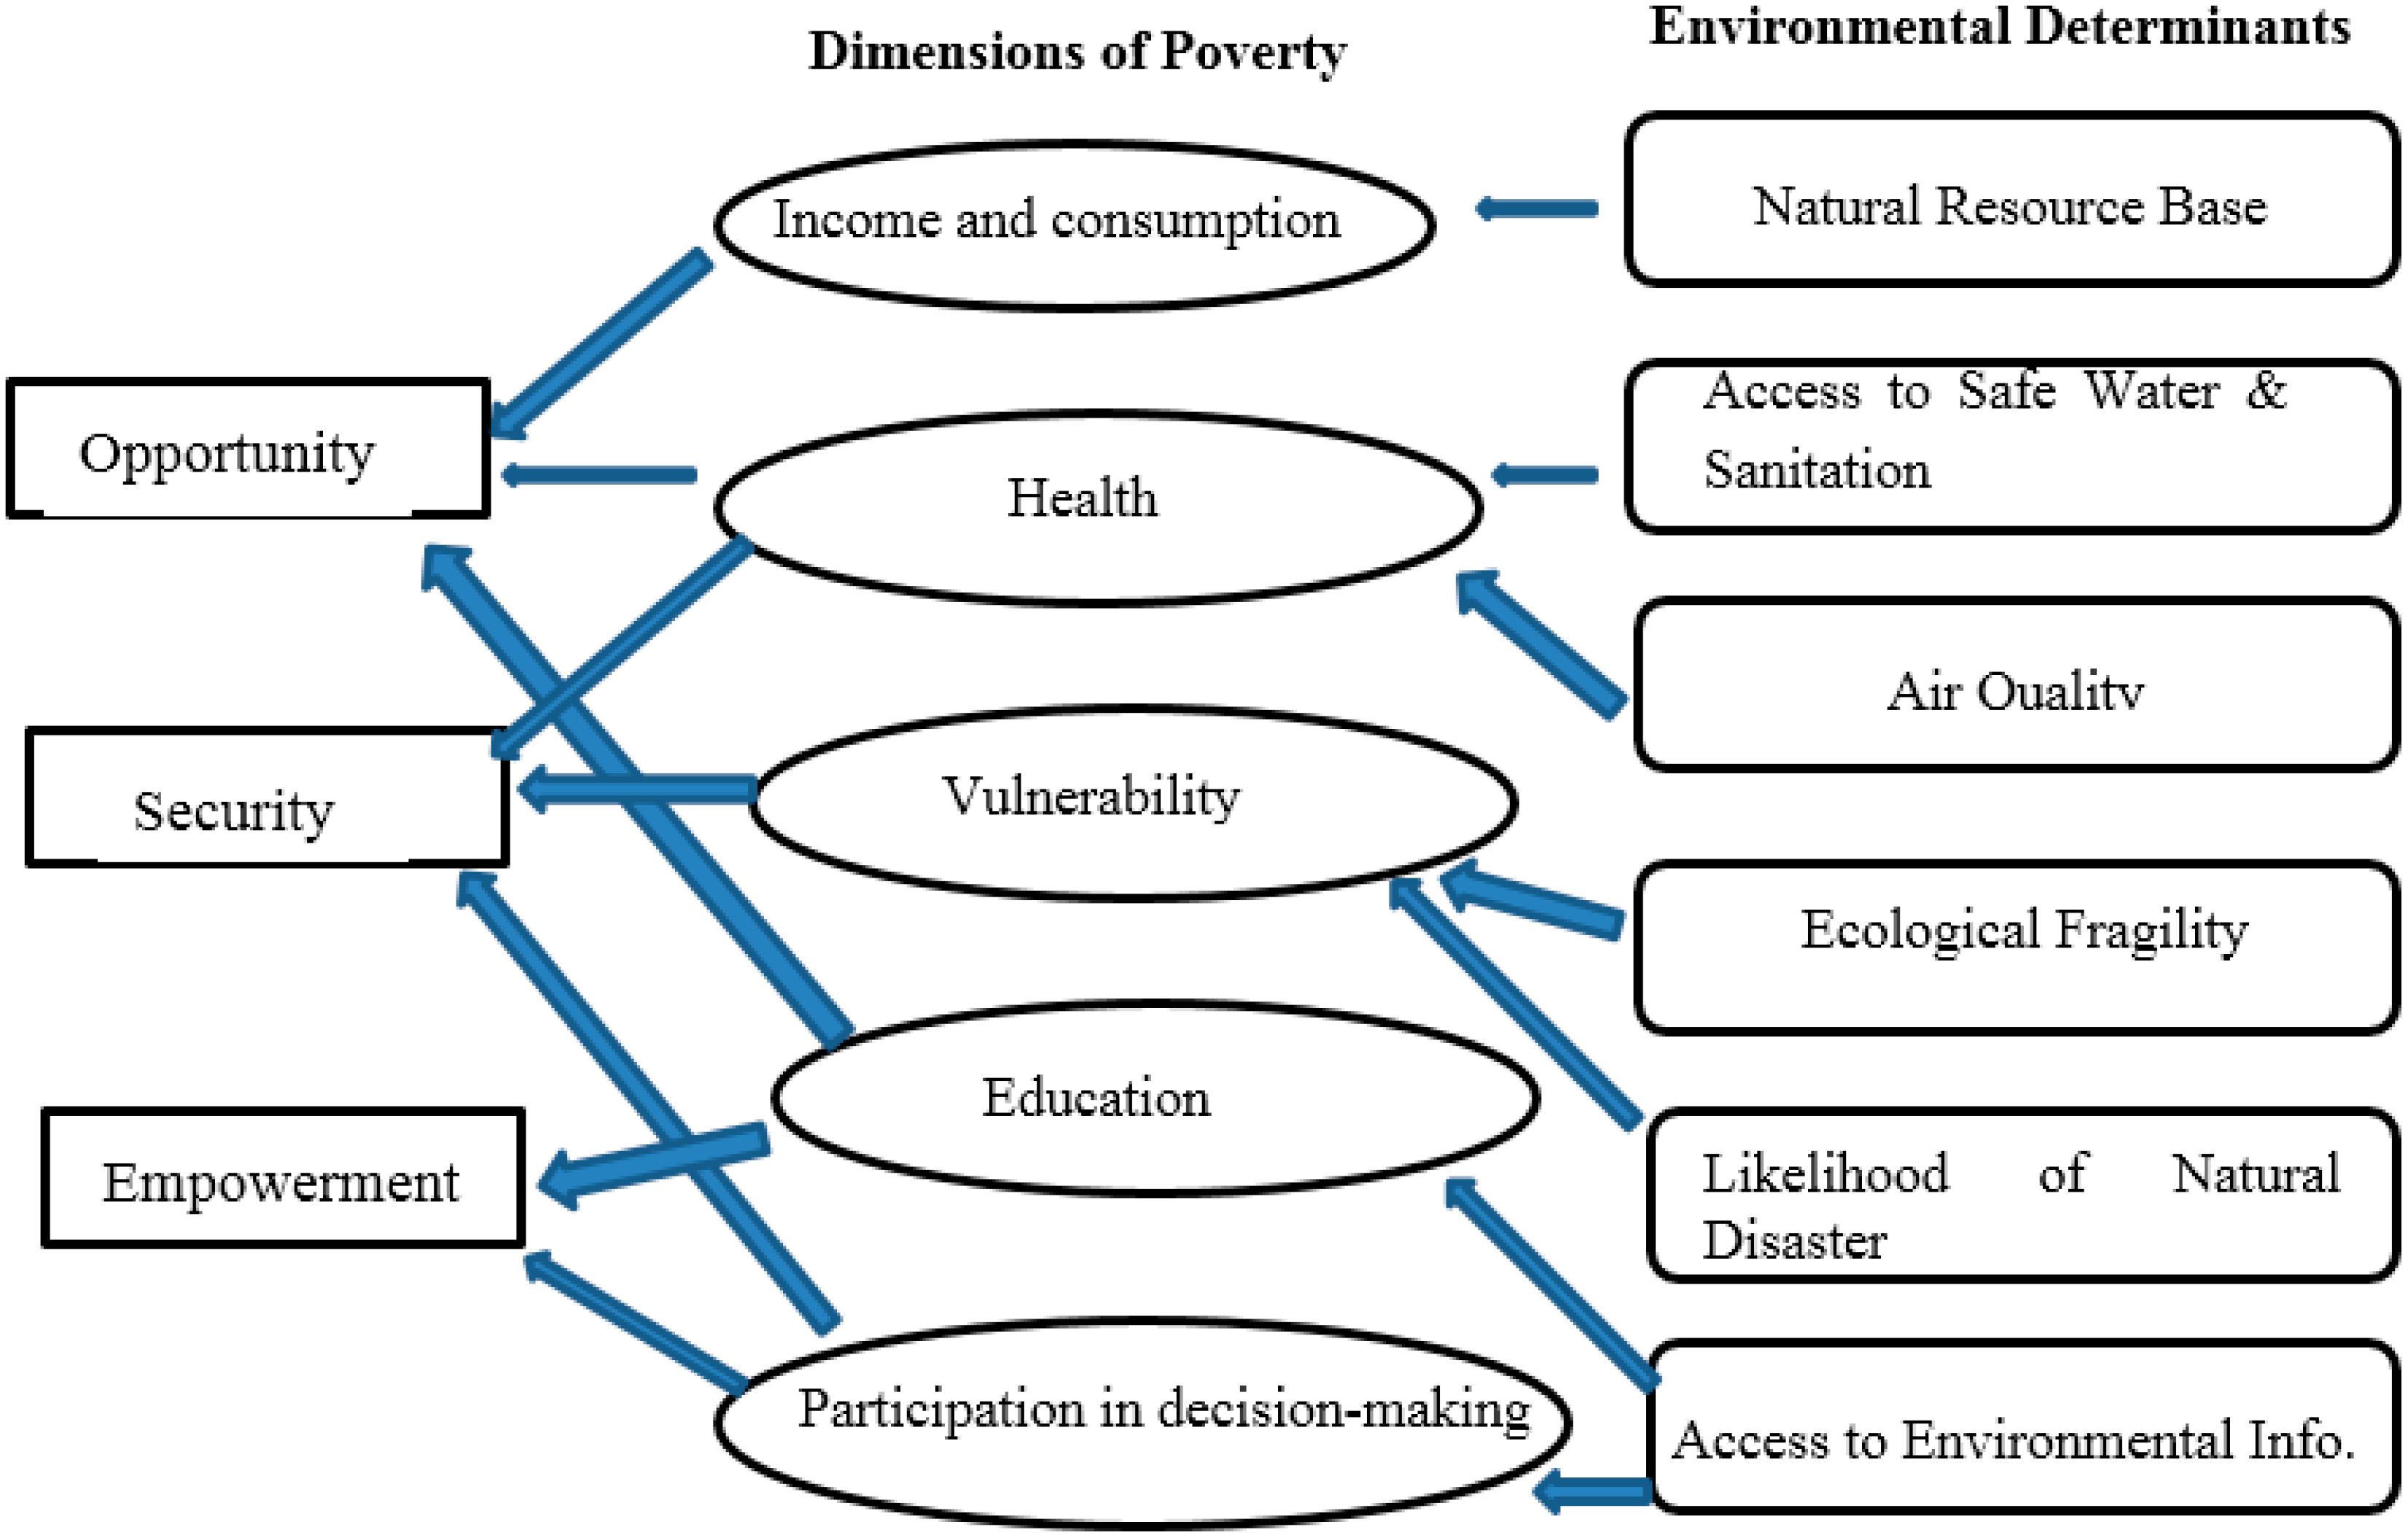 What should a person living in an unfavorable ecological zone know